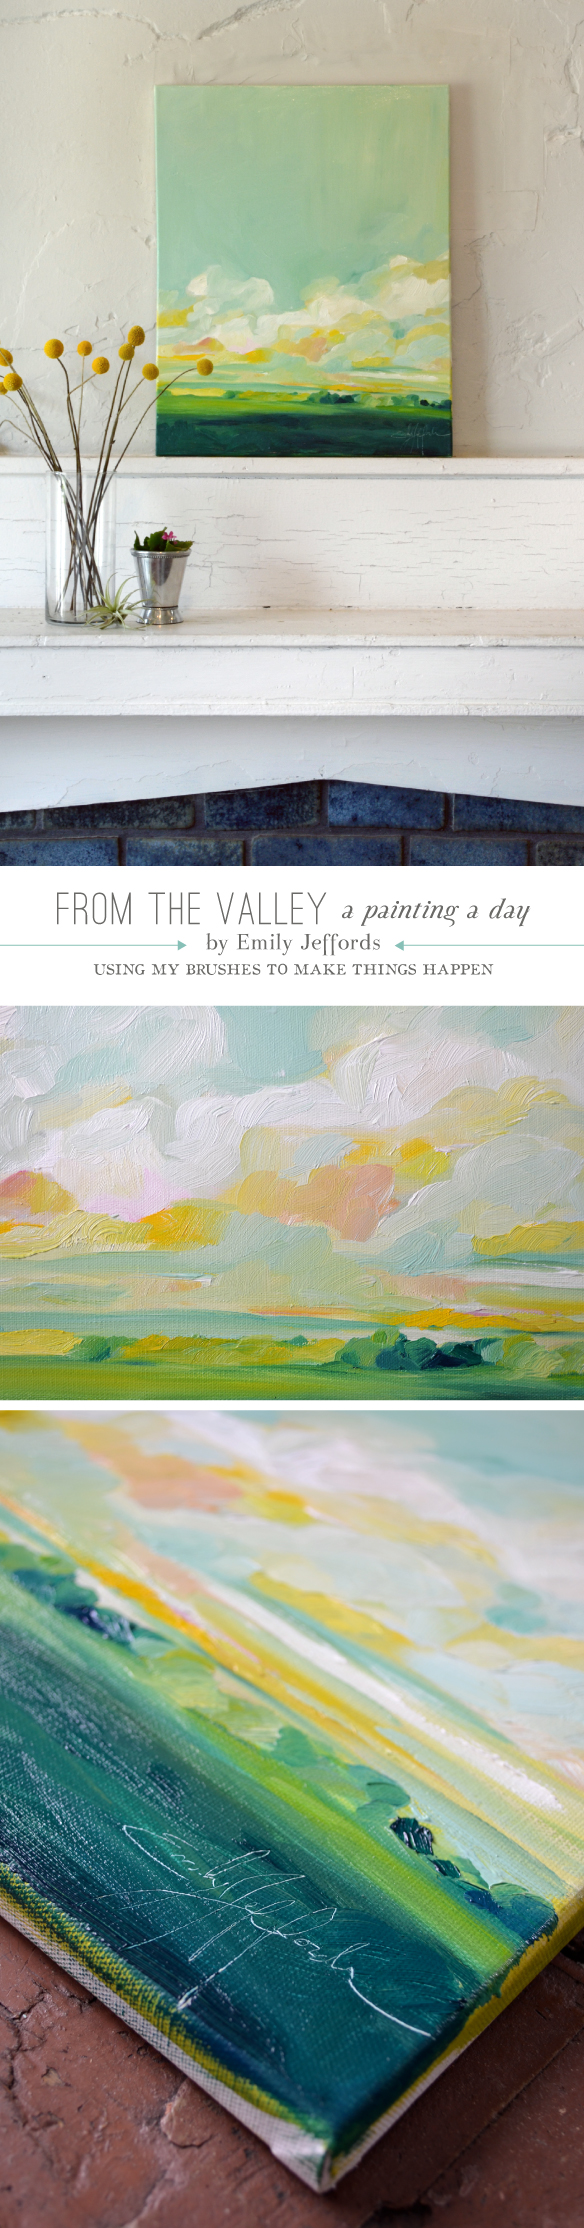 From the Valley: Painting-a-day by Emily Jeffords 16x20 inches